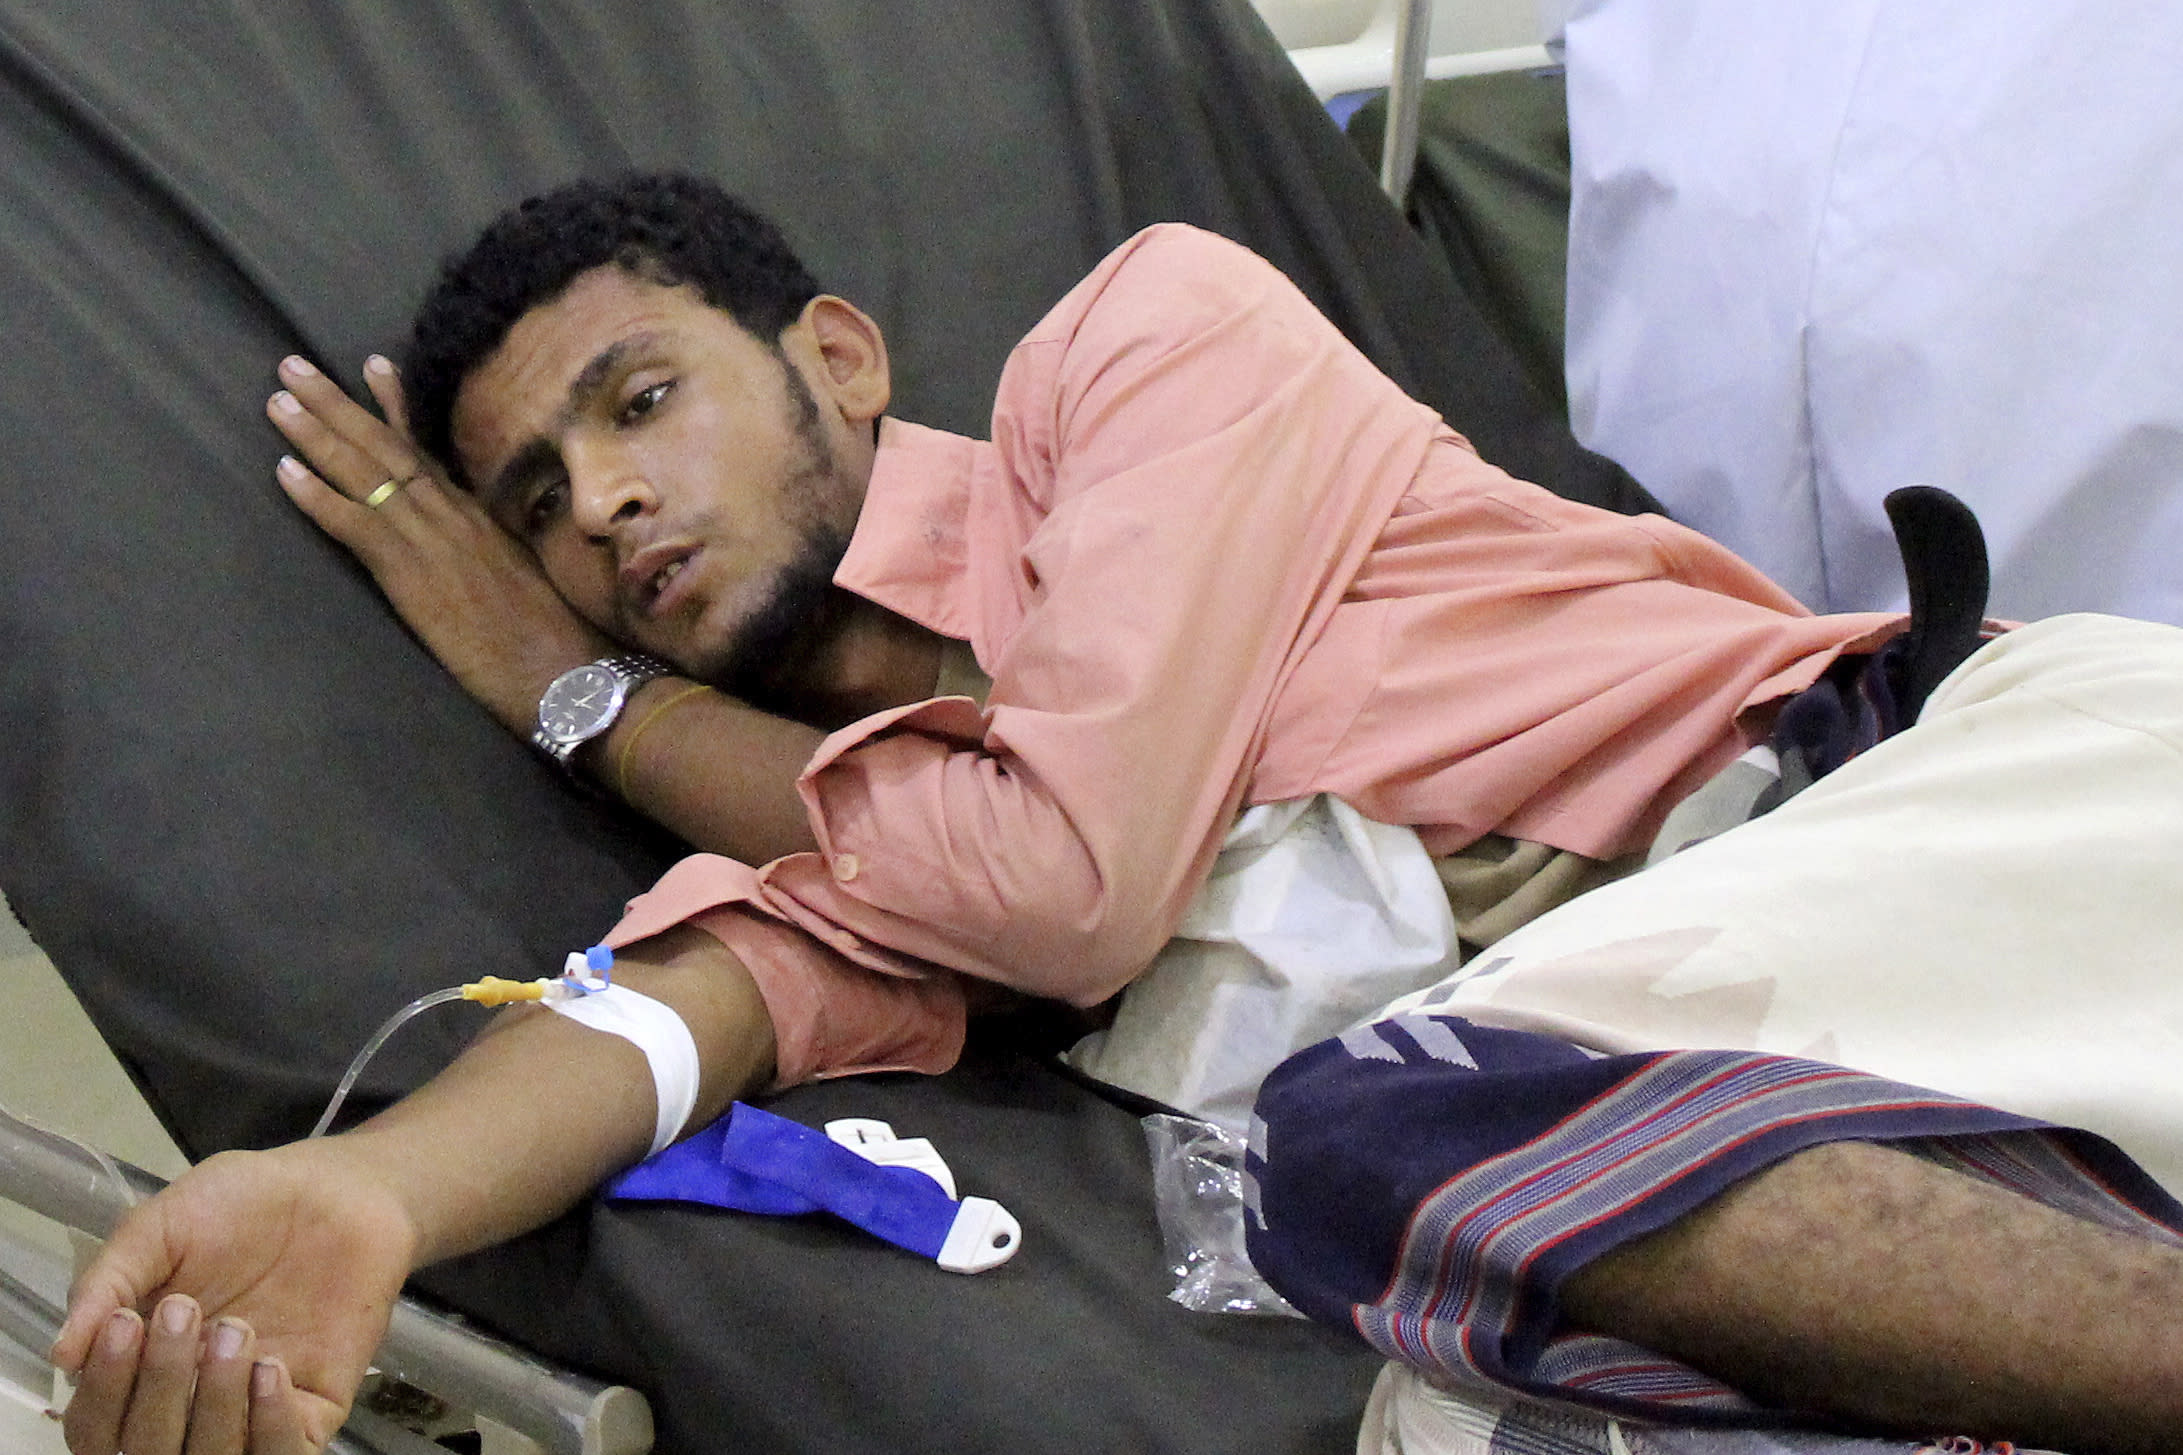 UN forced to cut aid to Yemen, even as virus increases need - yahoo